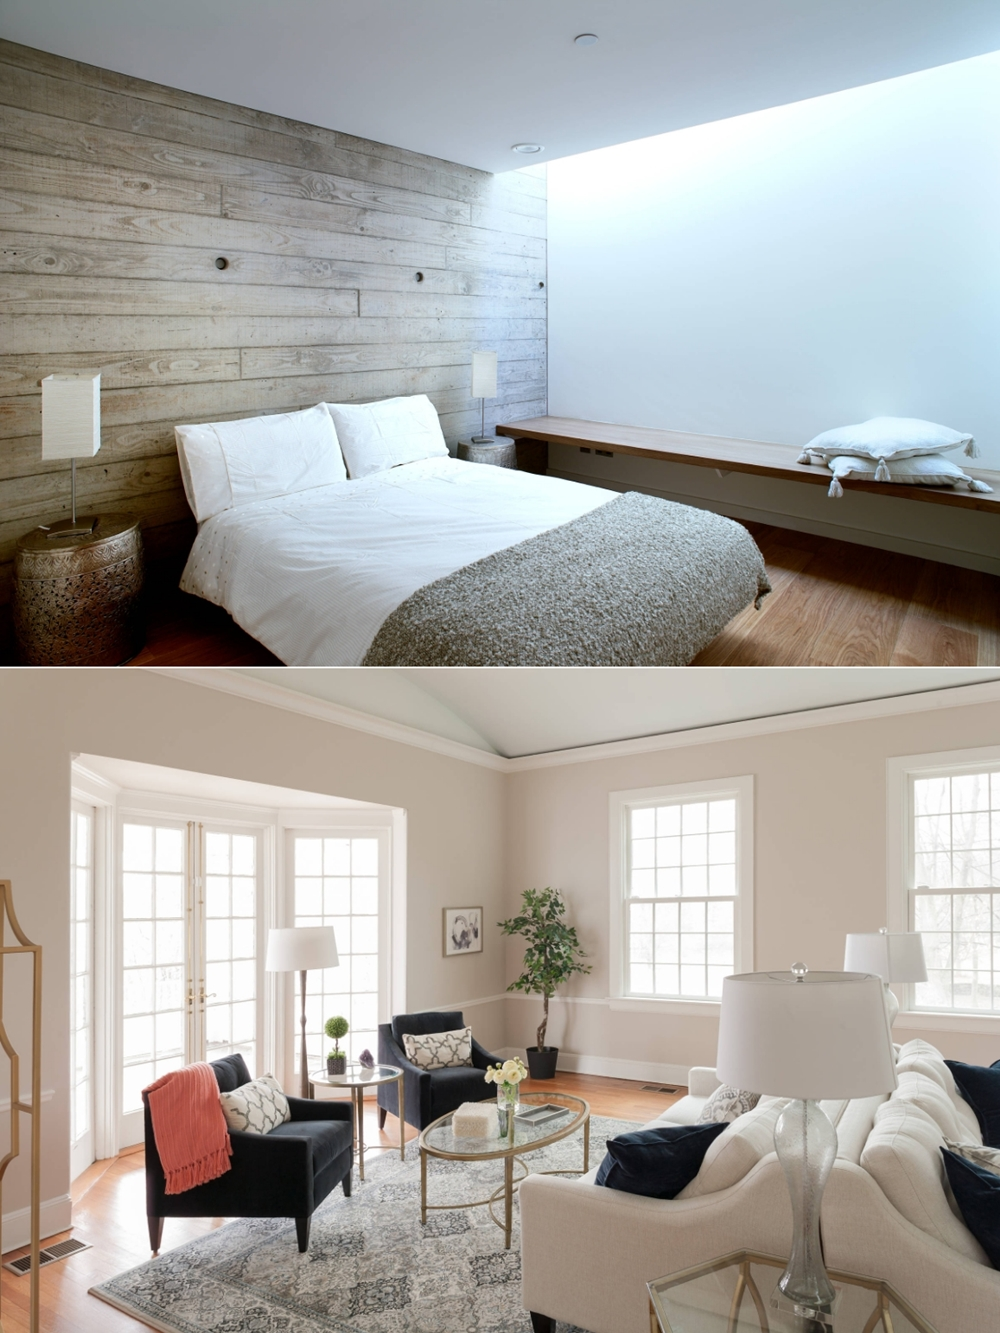 How to Add a Zen Feel to Your Home